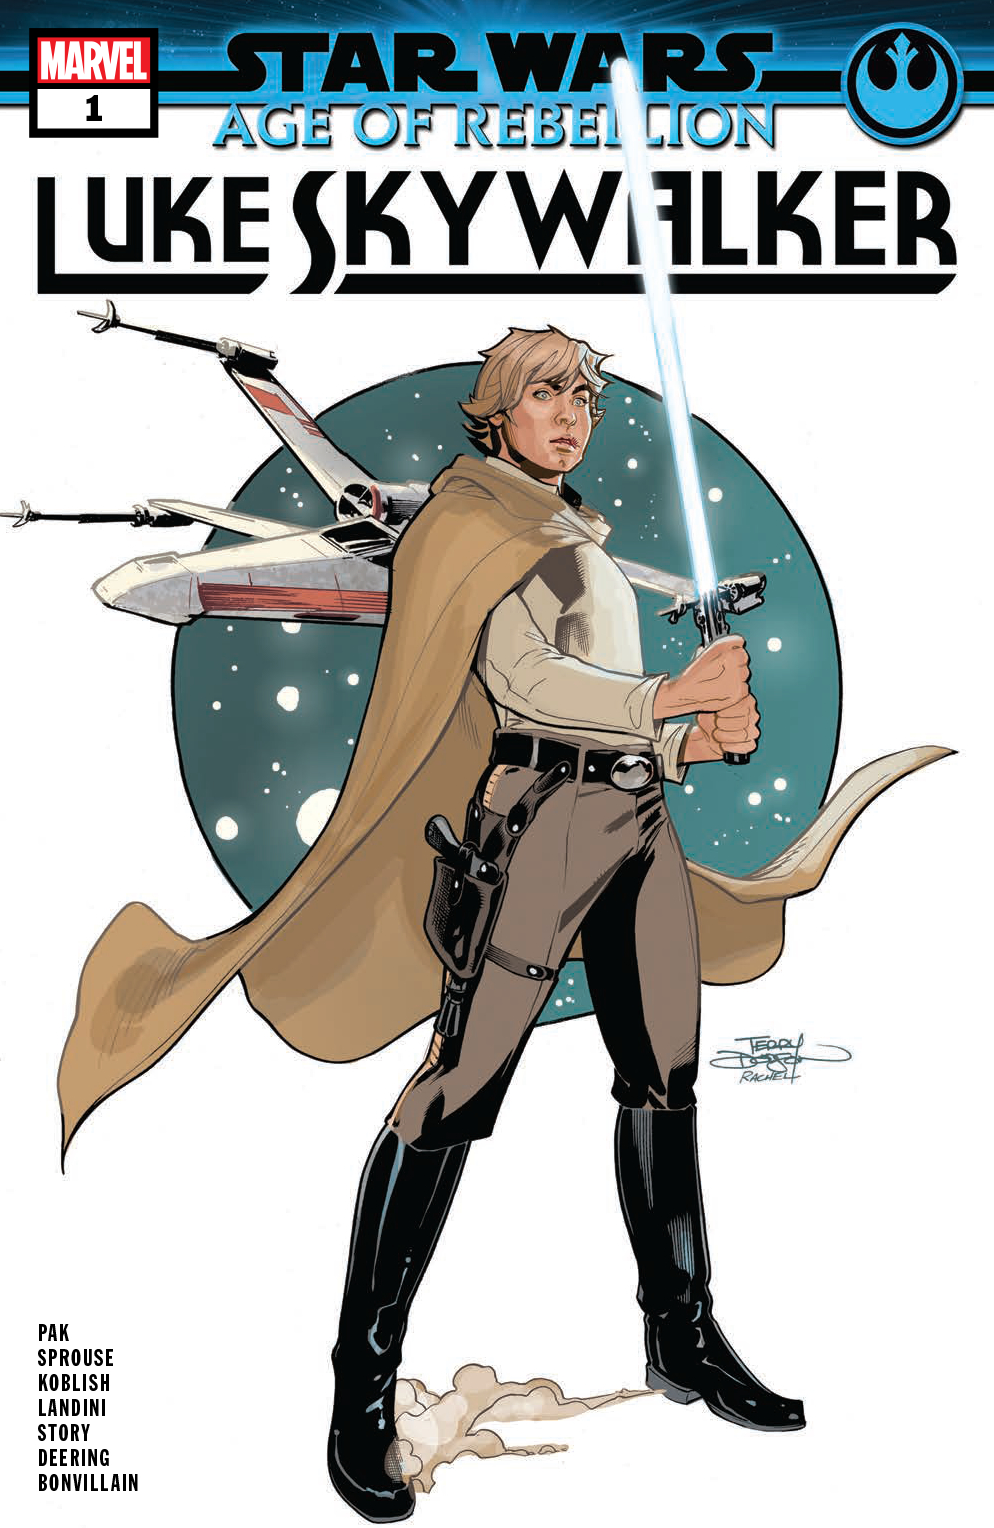 STAR WARS AOR LUKE SKYWALKER #1